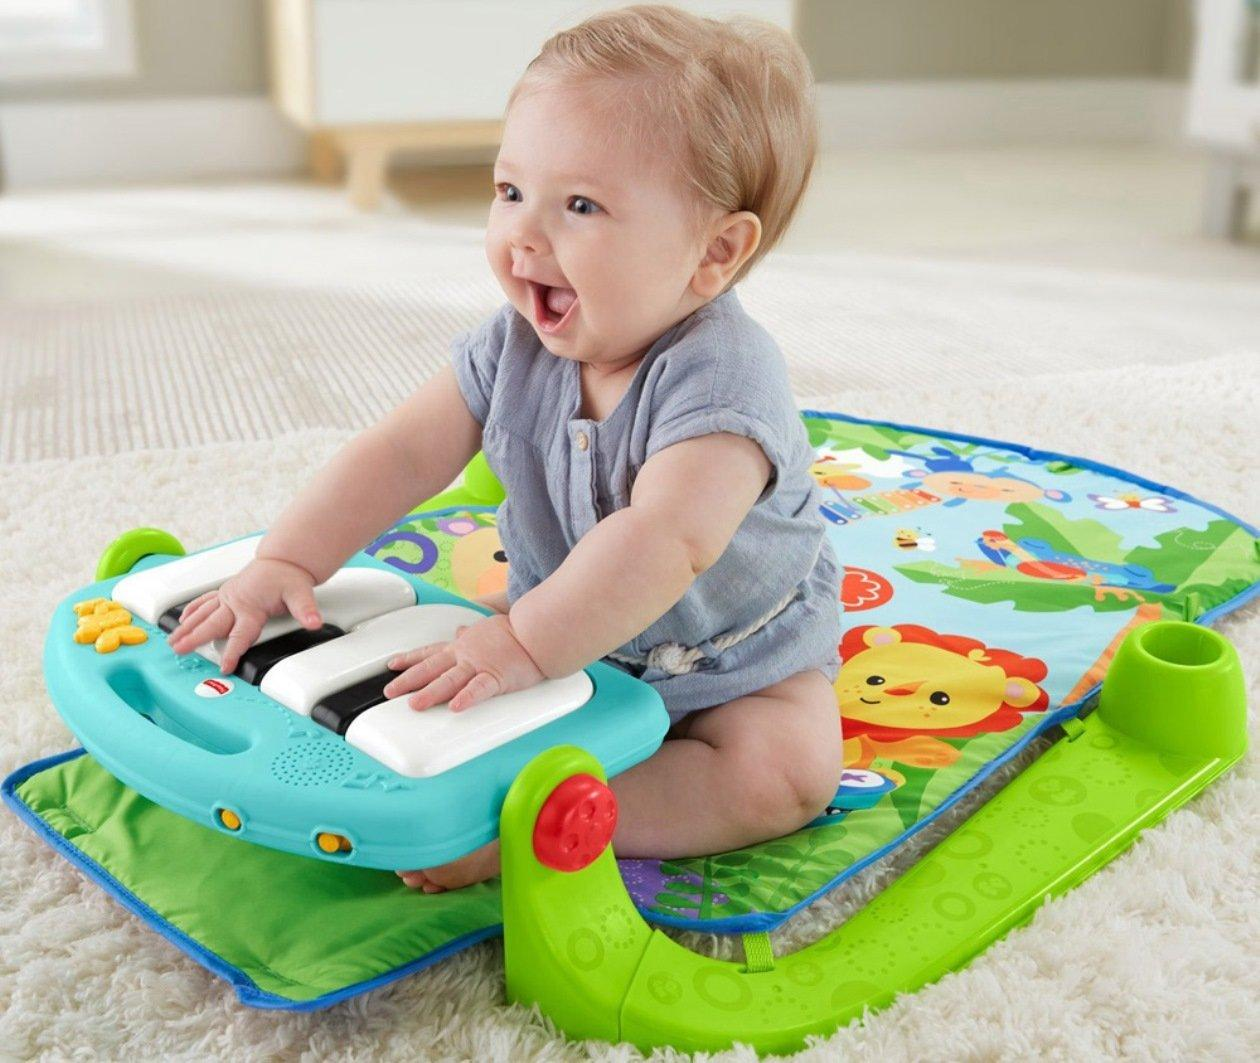 Amazon.com : Fisher-Price Kick & Play Piano Gym, Blue/Green : Baby Musical Toys : Baby